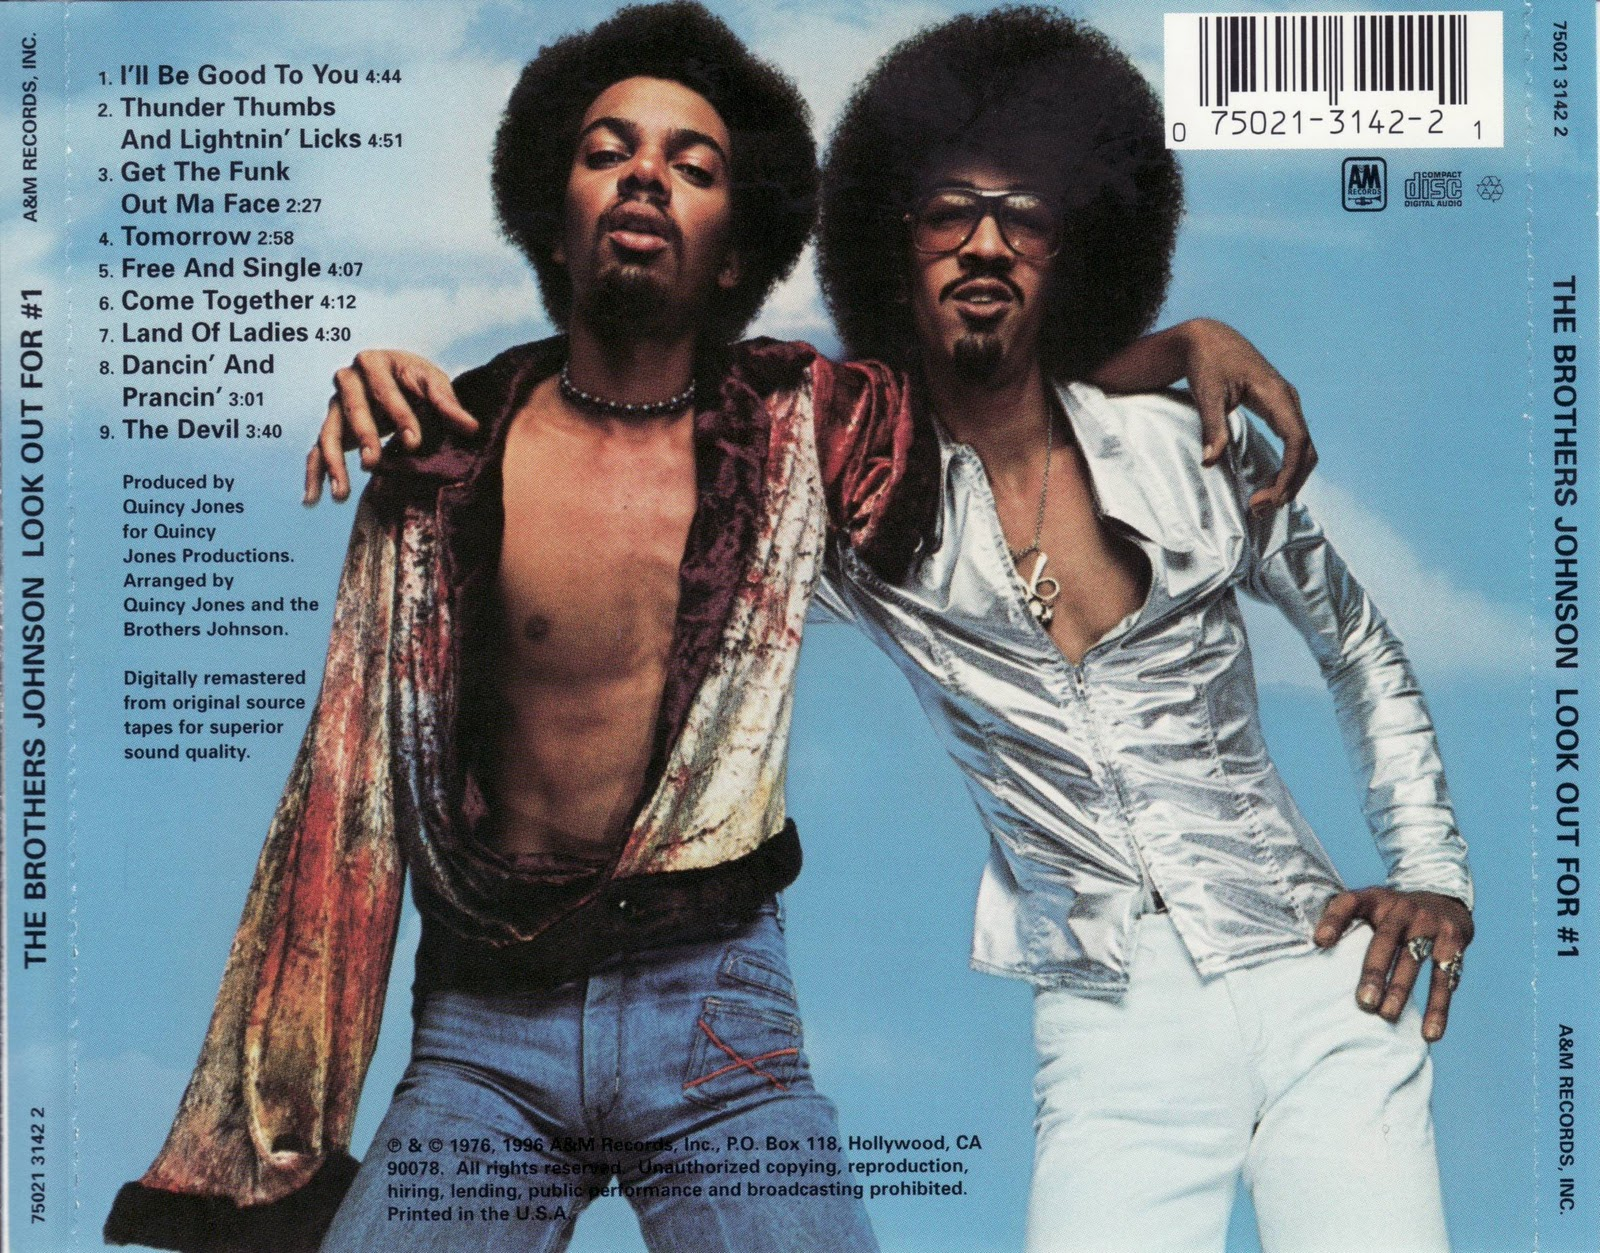 Brothers Johnson Dancin' Free